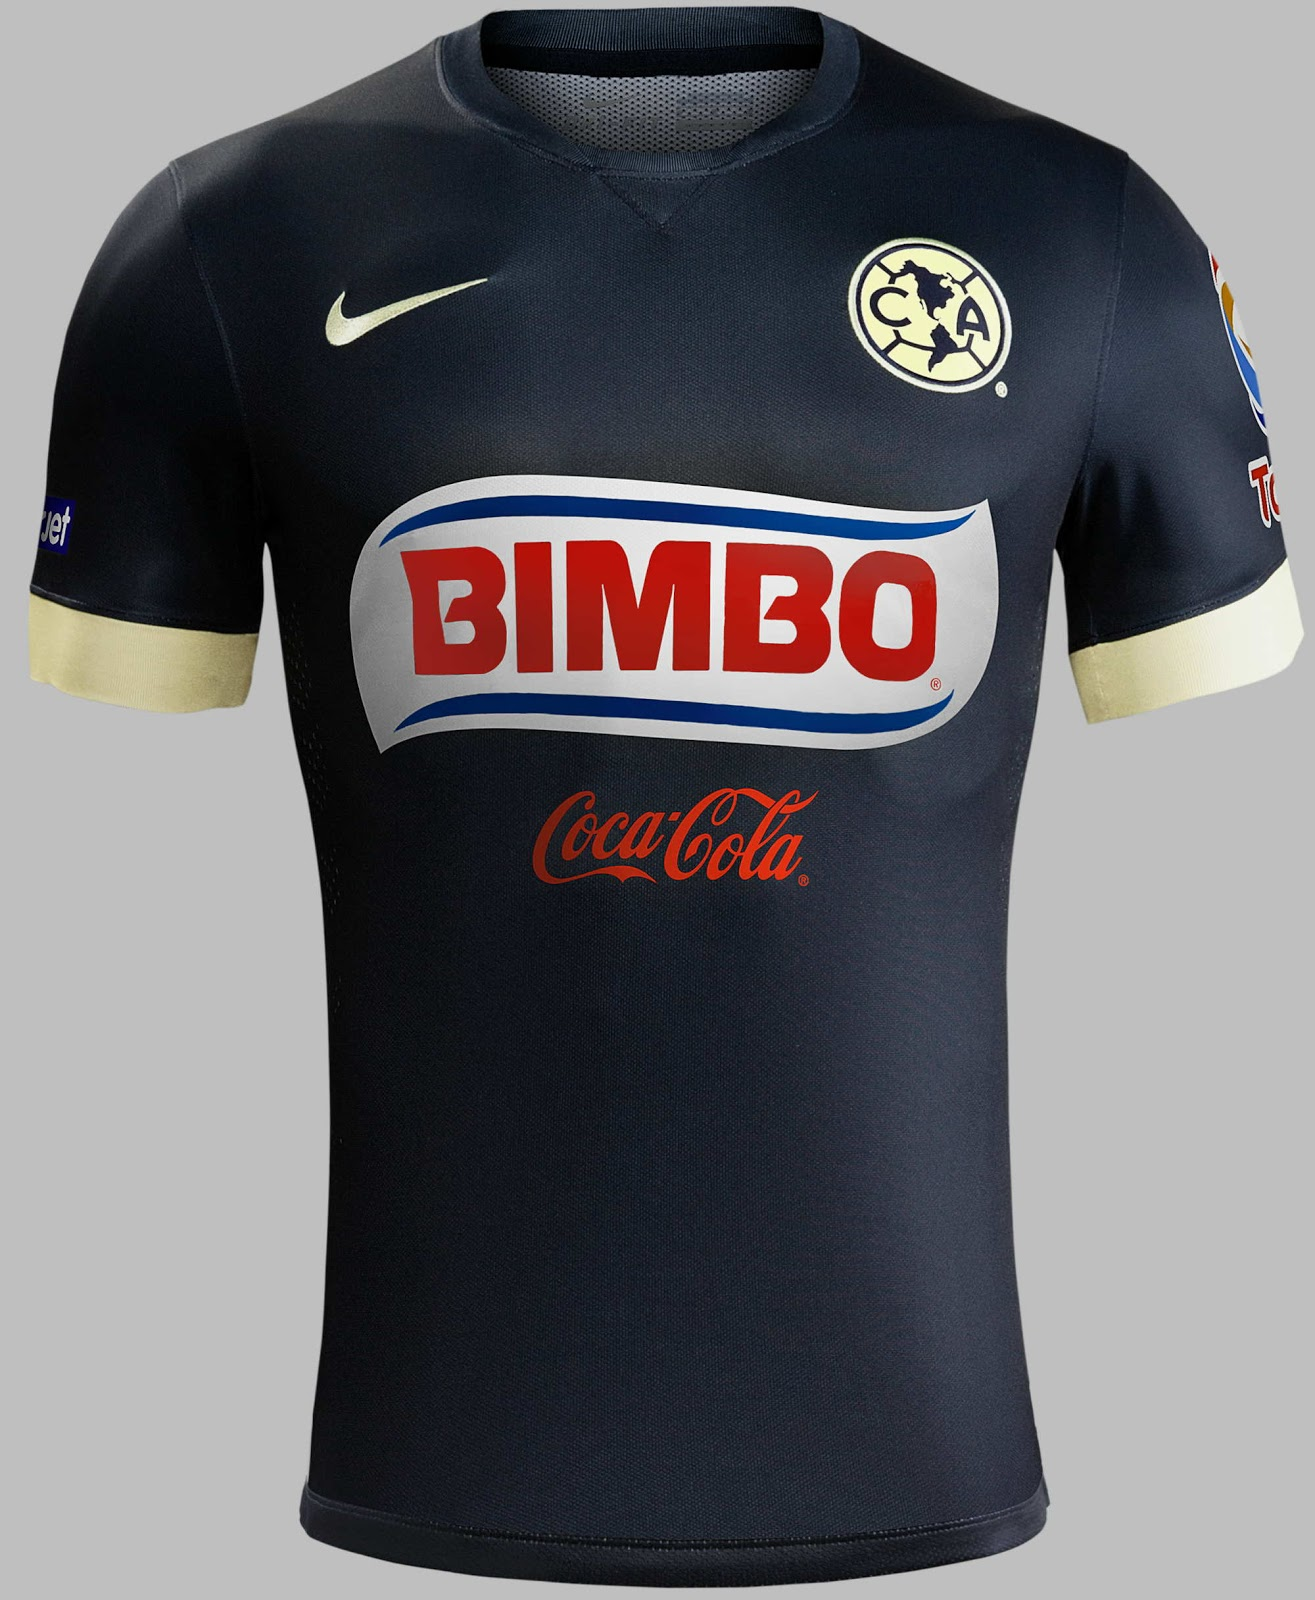 club america 2014 2015 home and away kits released footy